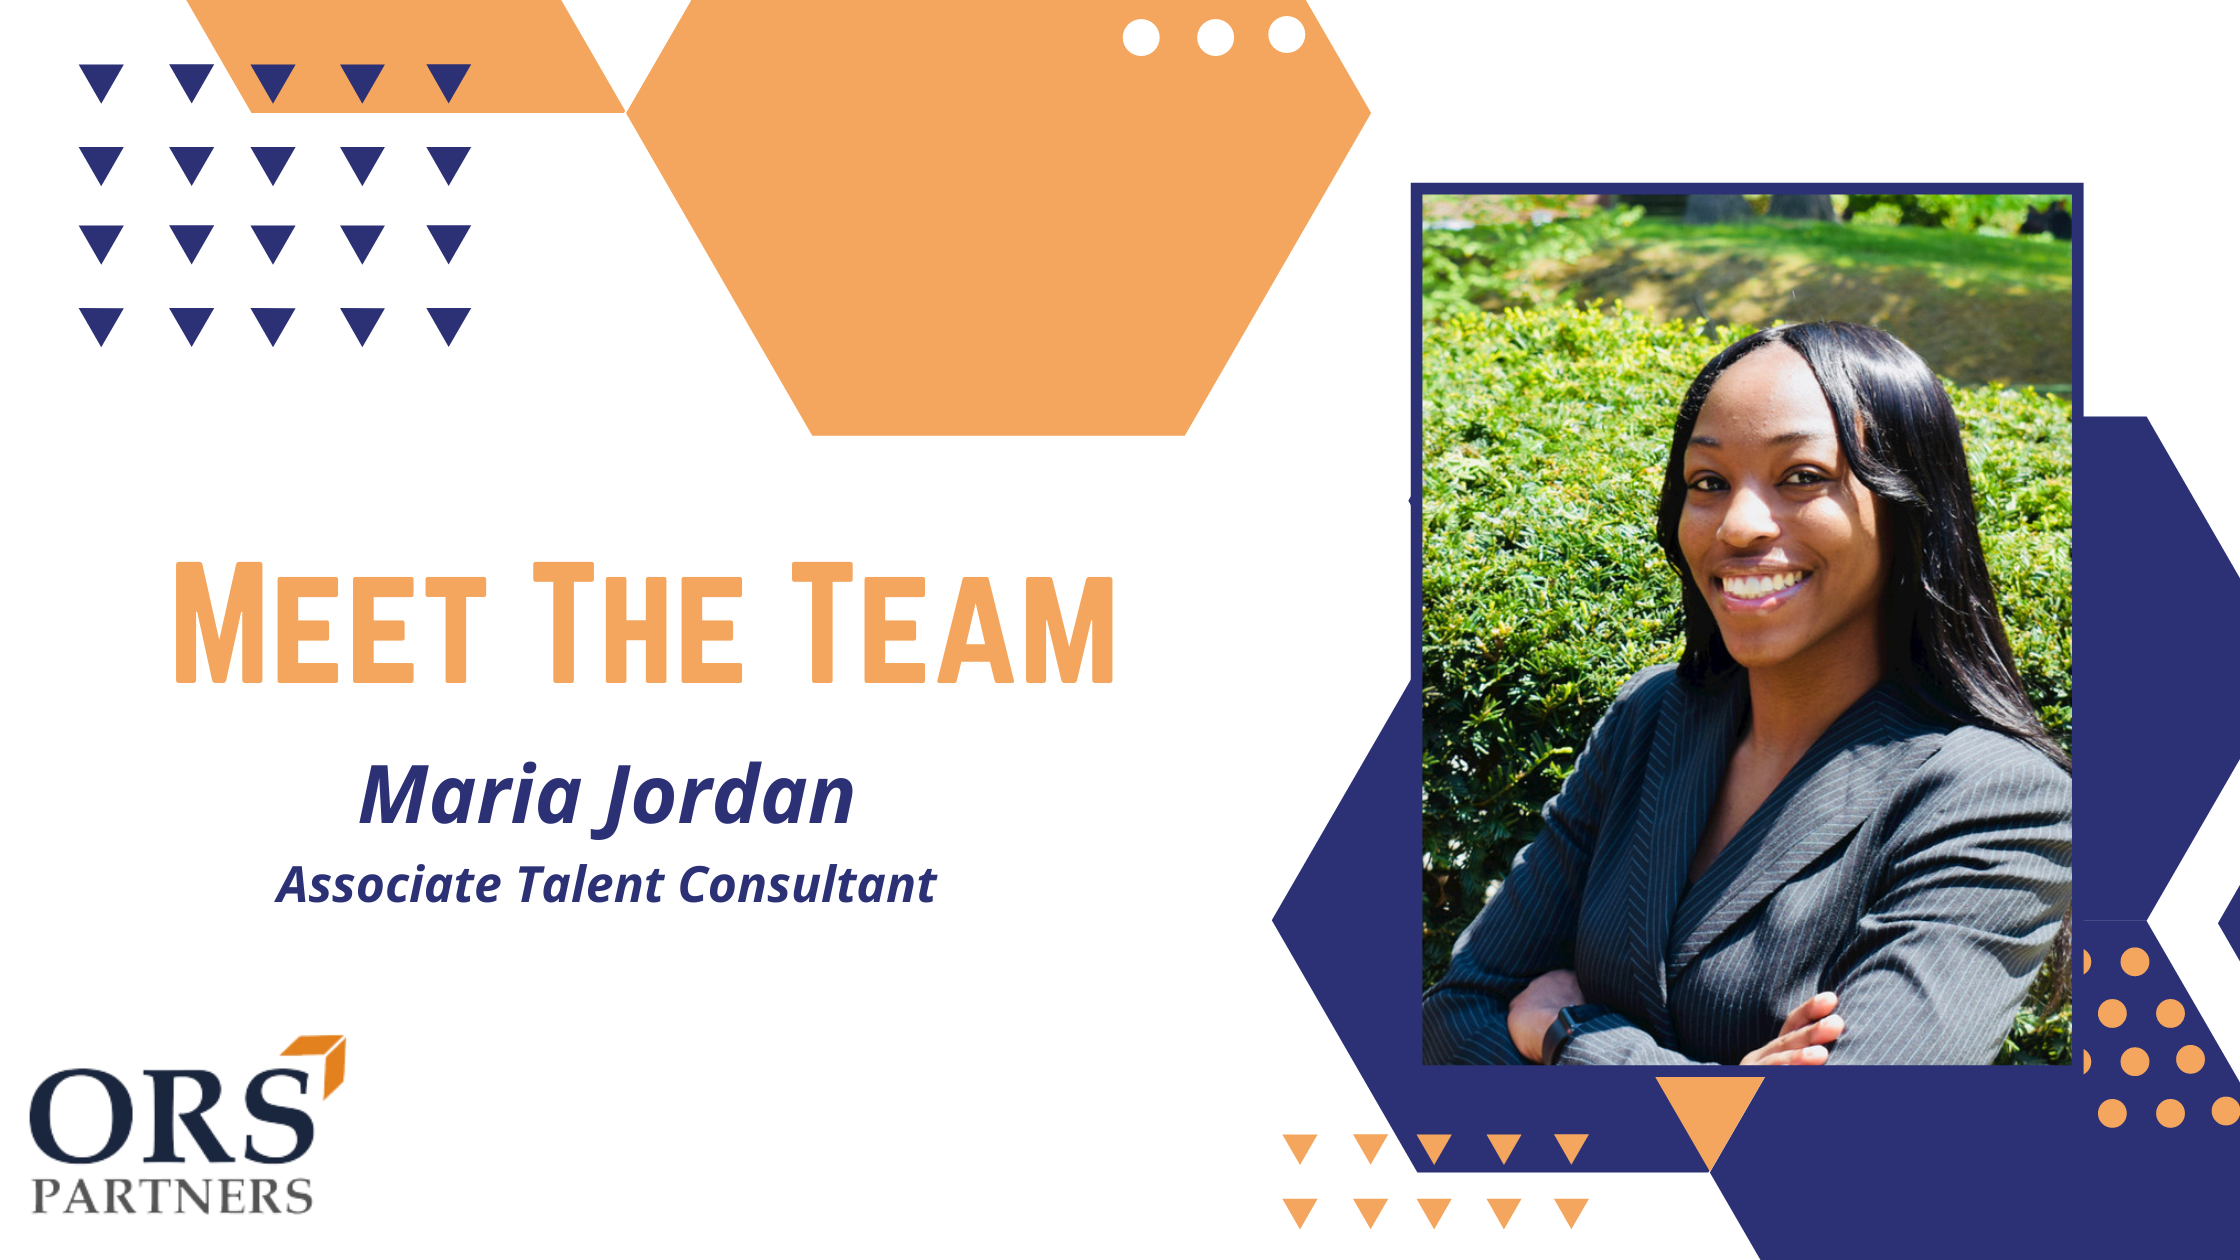 Meet the Team: Maria Jordan